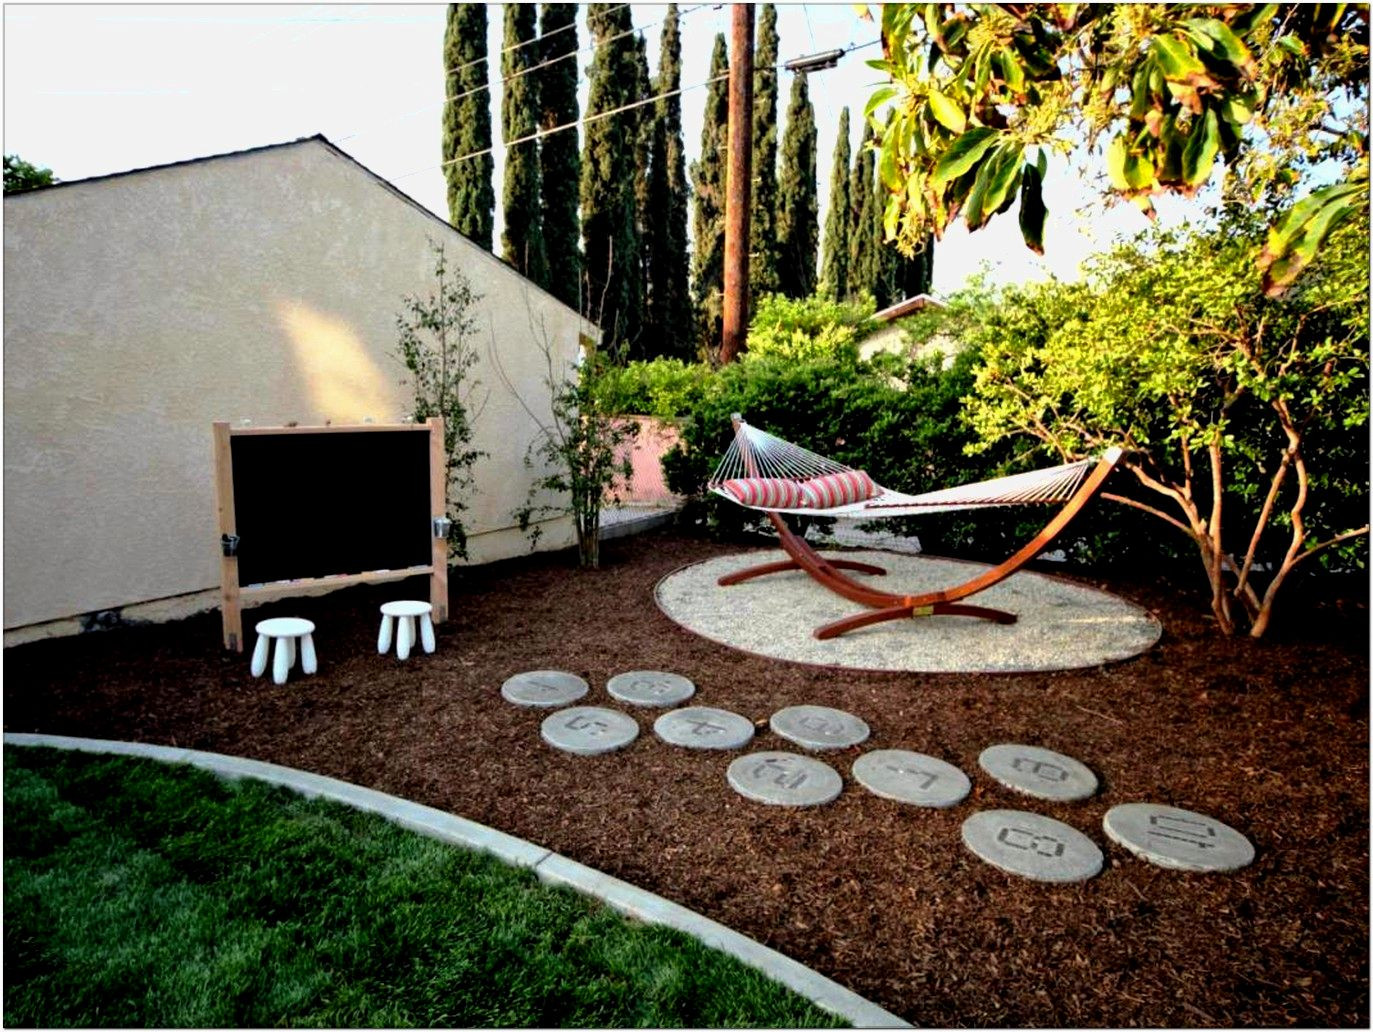 Best ideas about Small Backyard Ideas On A Budget . Save or Pin Small Backyard Landscaping Ideas A Bud – Newest Home Now.